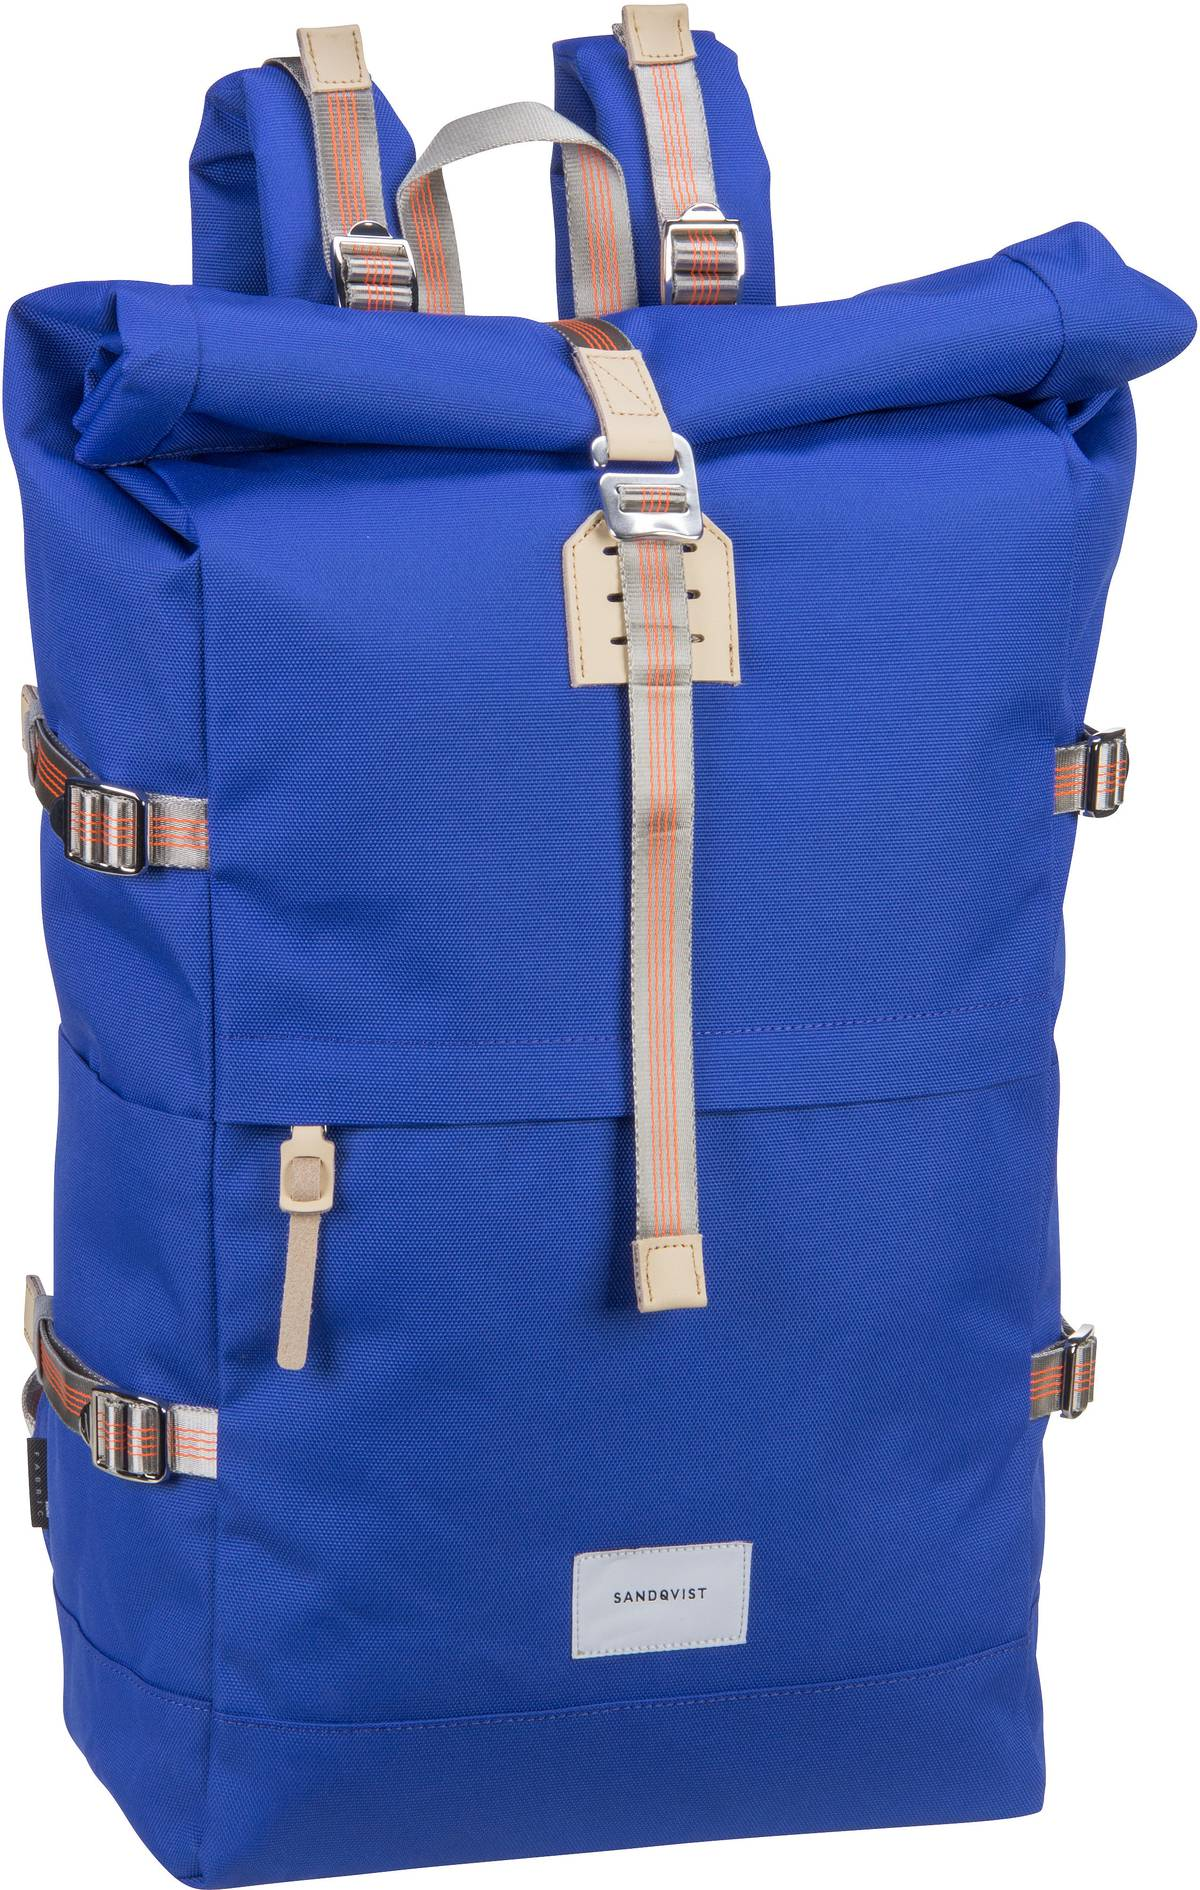 Laptoprucksack Bernt Rolltop Backpack Bright Blue (20 Liter)